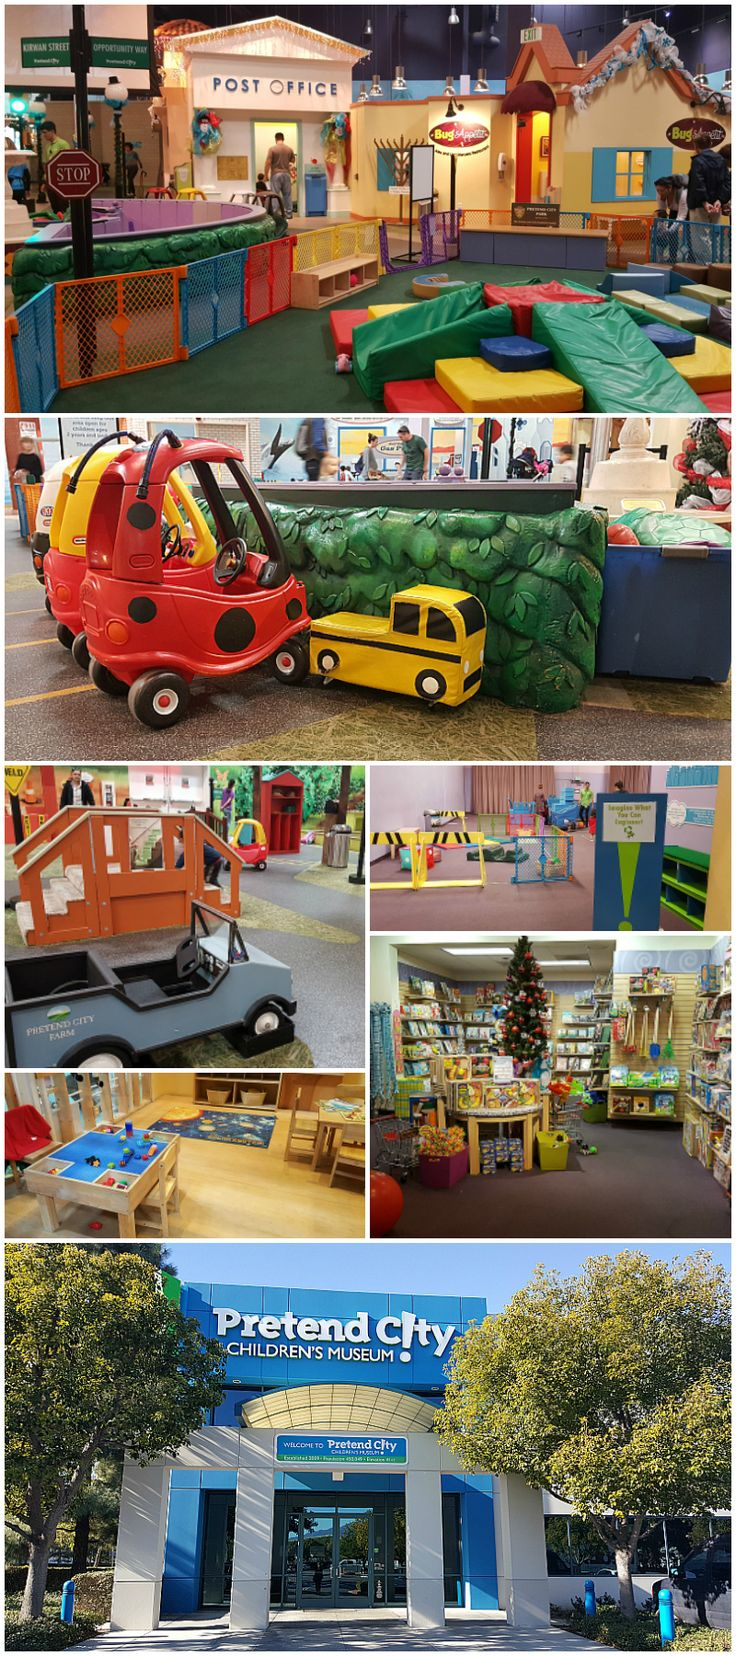 76 Entry Level Interior Design Jobs Orange County Ca Pretend City Childrens Museum In